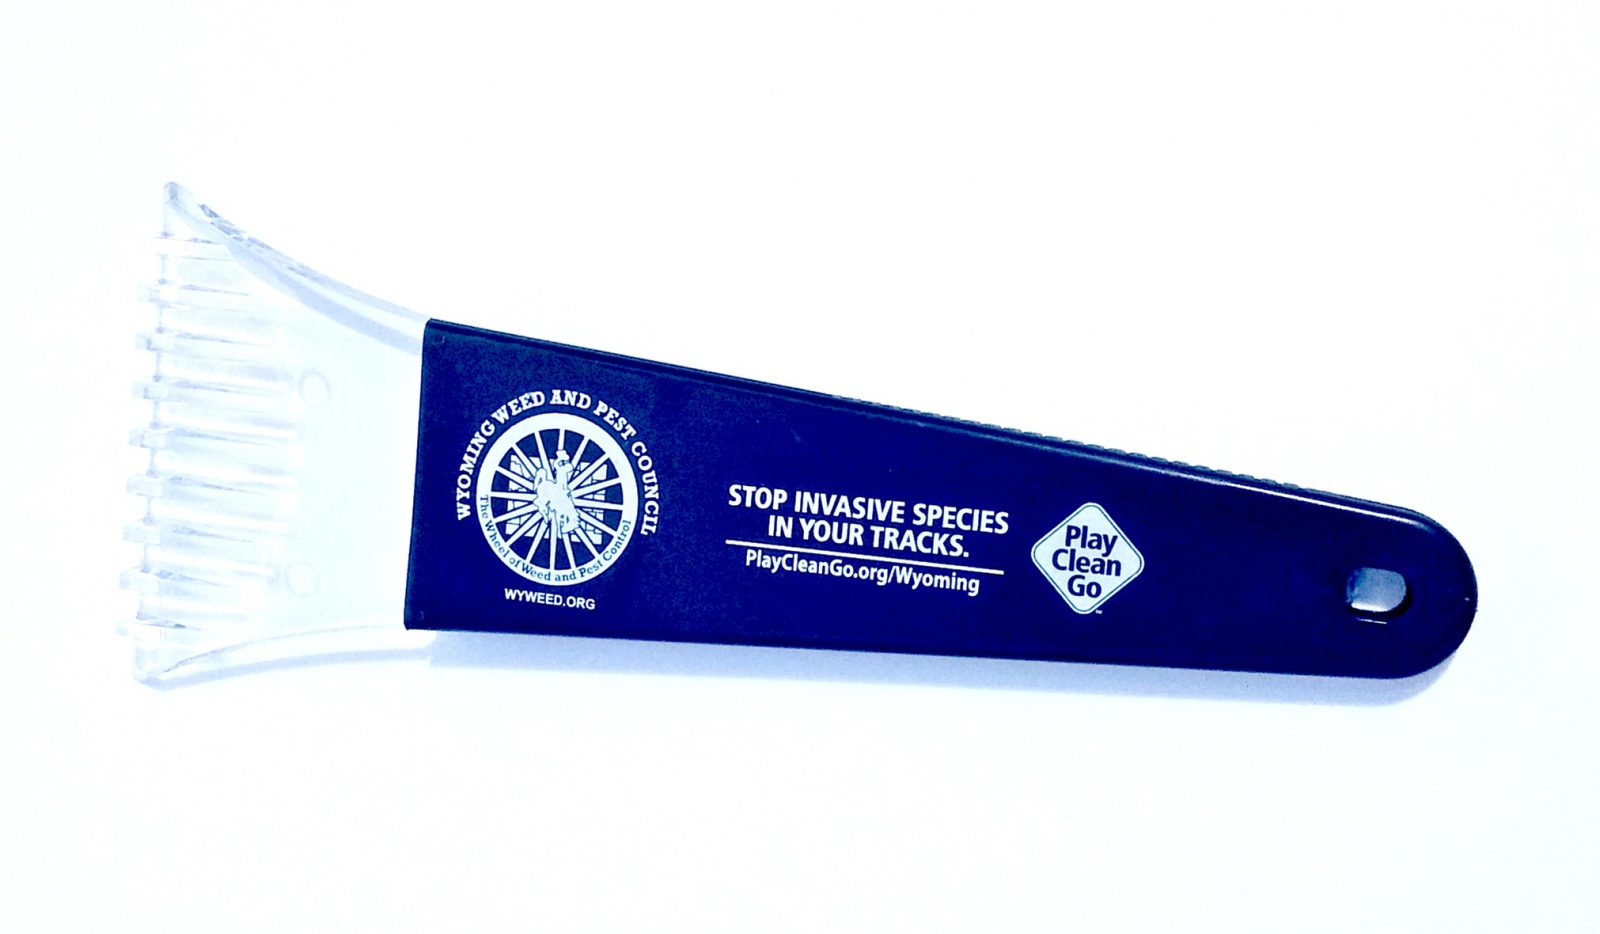 PlayCleanGo/Wyoming Weed & Pest Council Ice Scraper, Box of 10